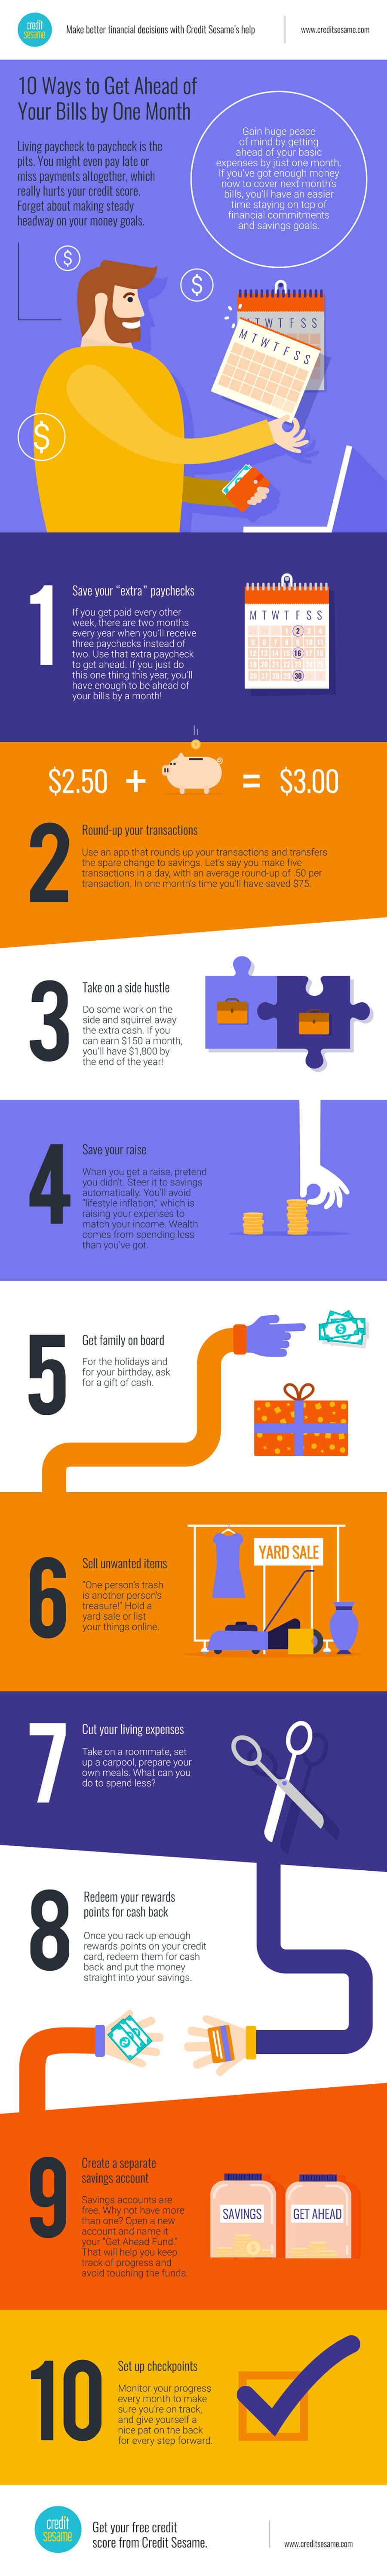 10 Ways to Get Ahead of Your Bills by 1 Month Infographic